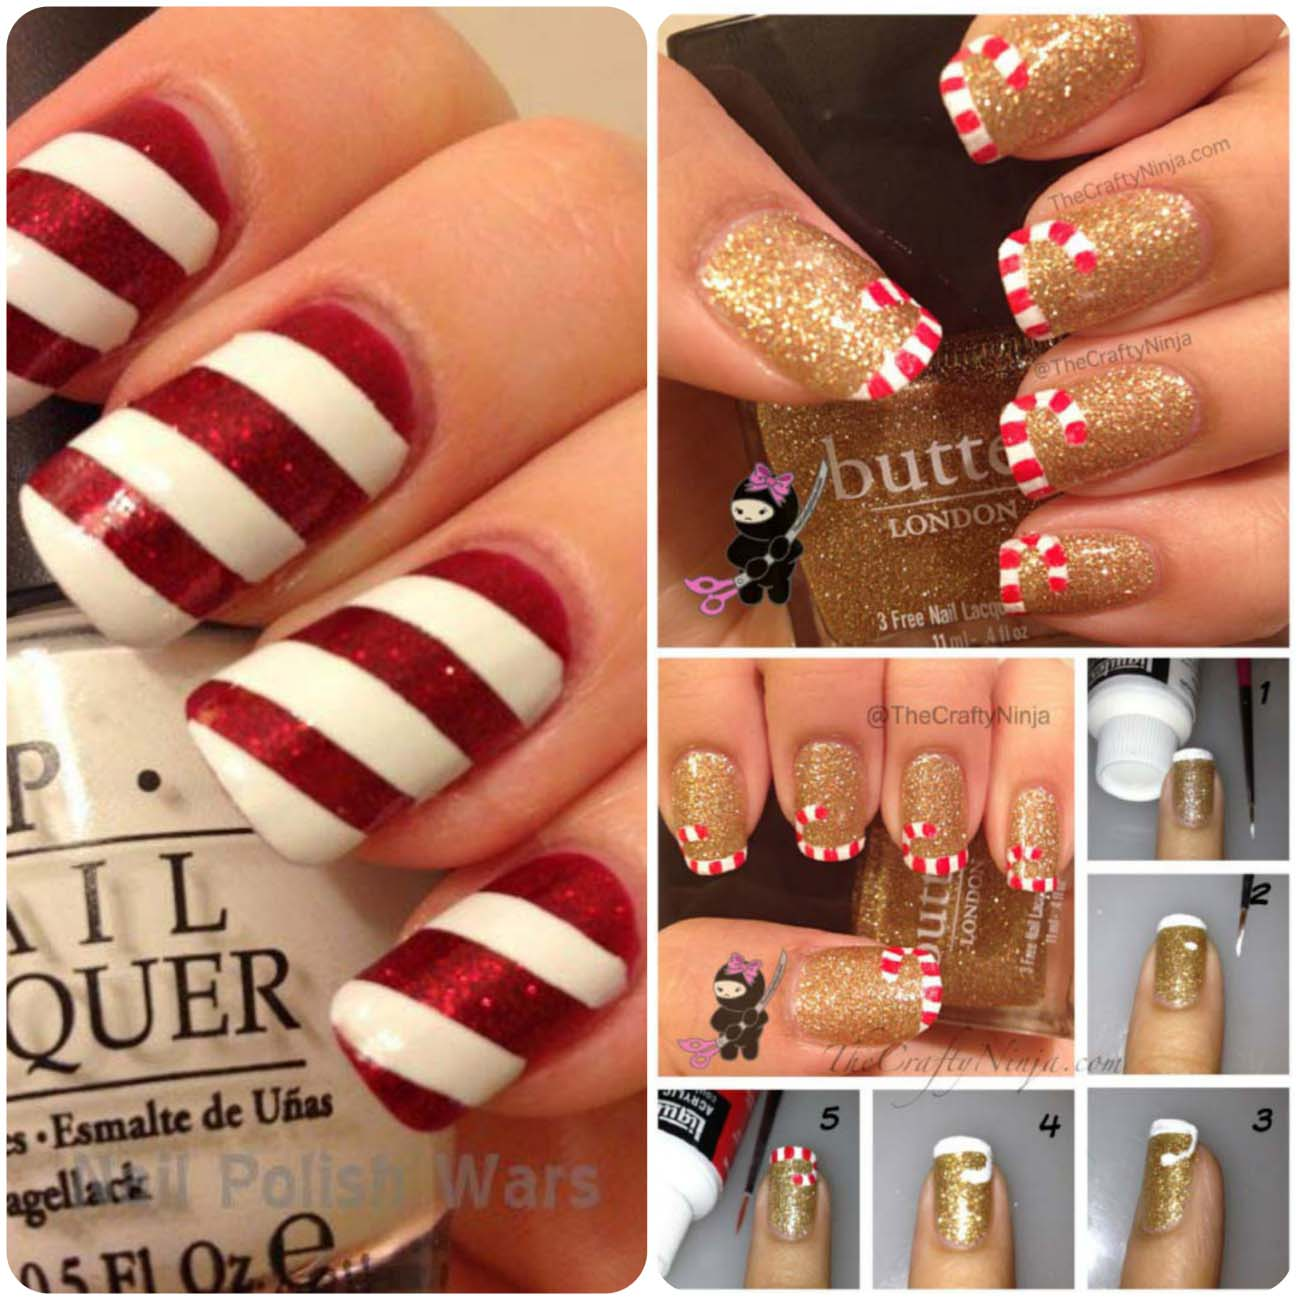 Charistmas Winter Nail art designs (10)_Fotor_Collage